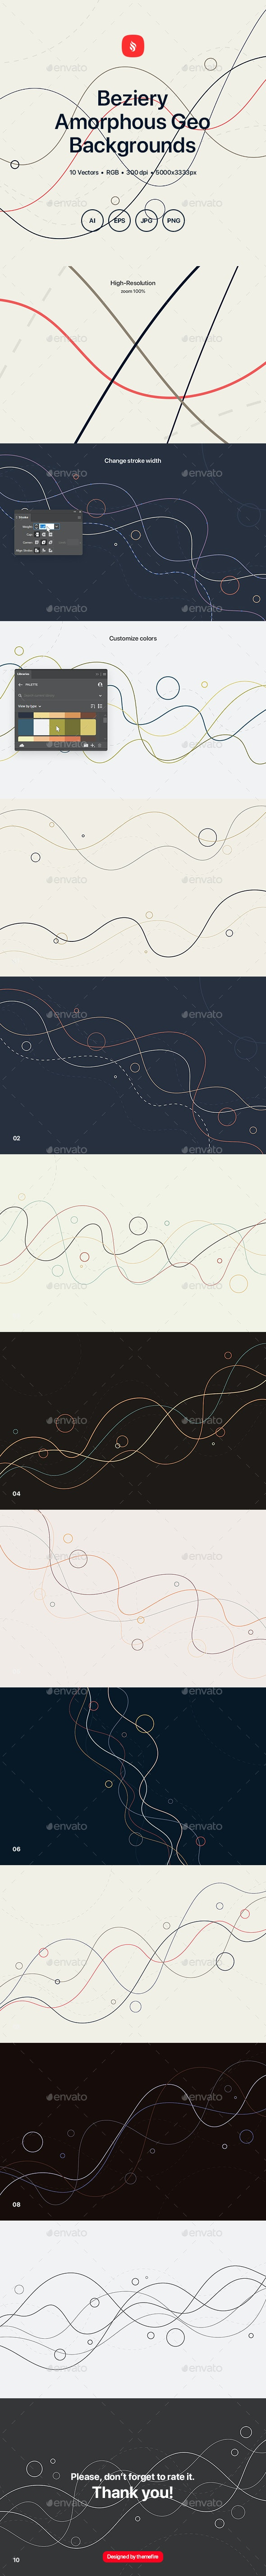 Beziery - Amorphous Geometric Backgrounds - Abstract Backgrounds